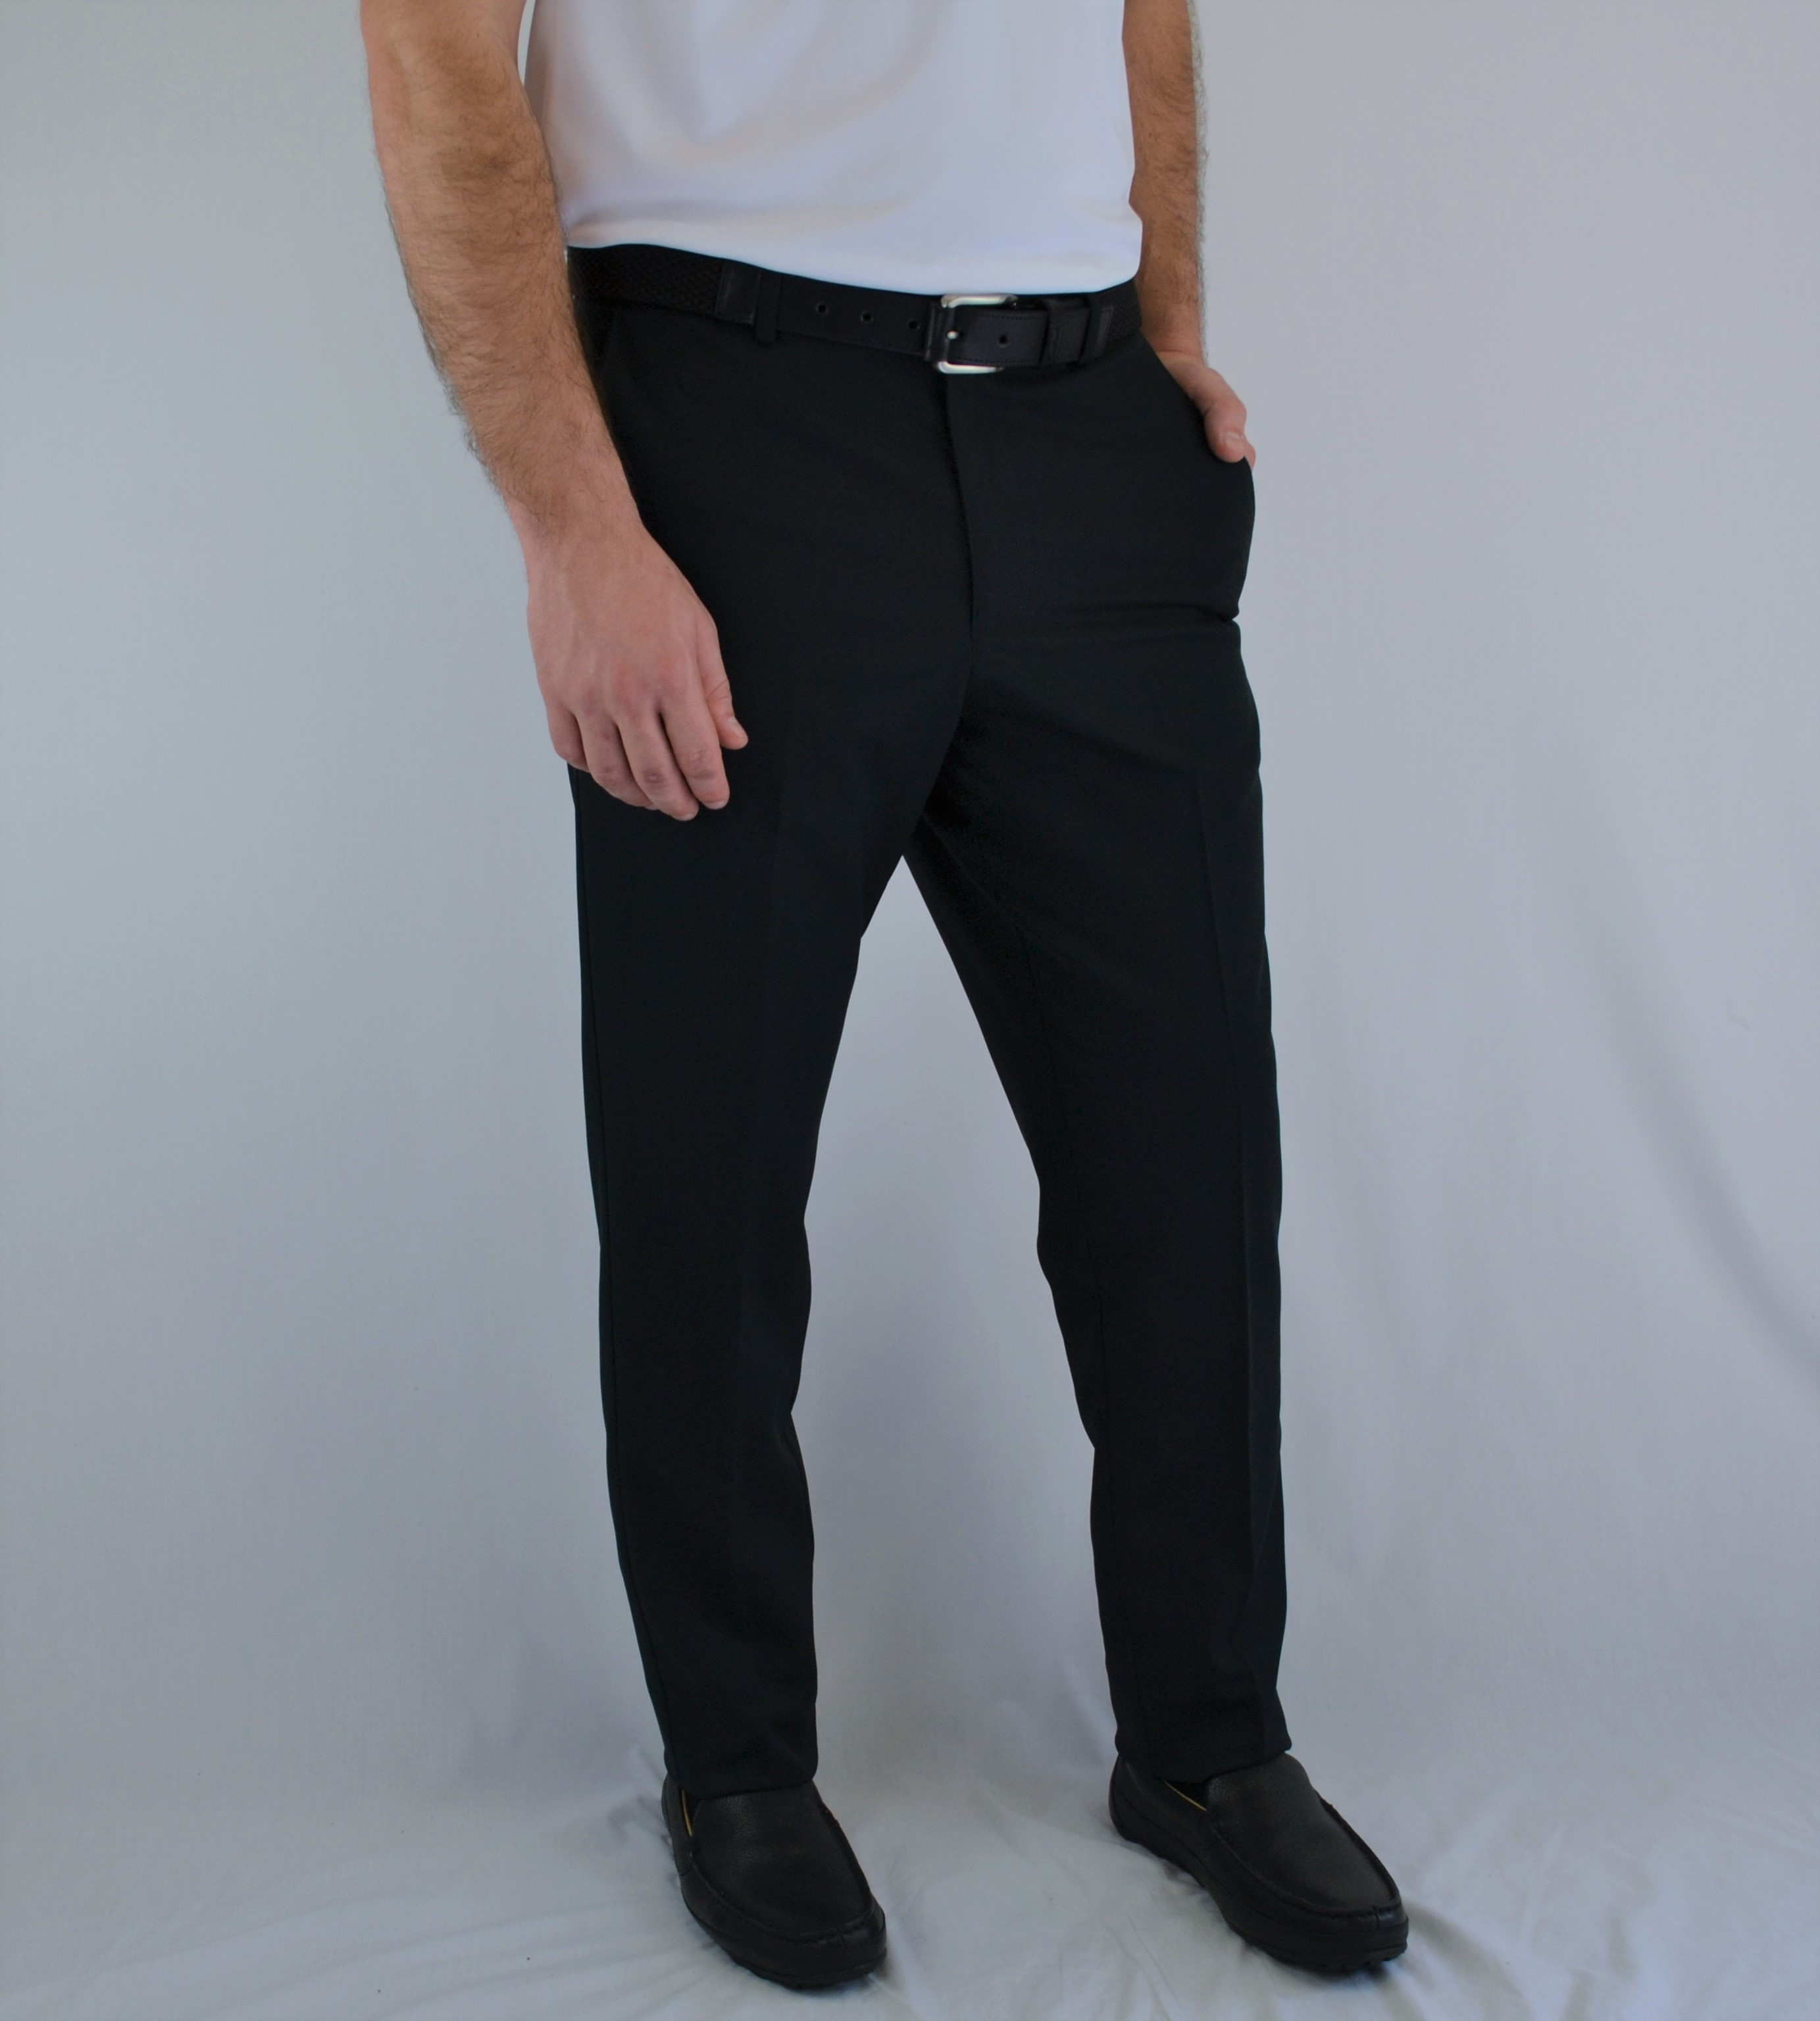 Mens Slim Dress Pants